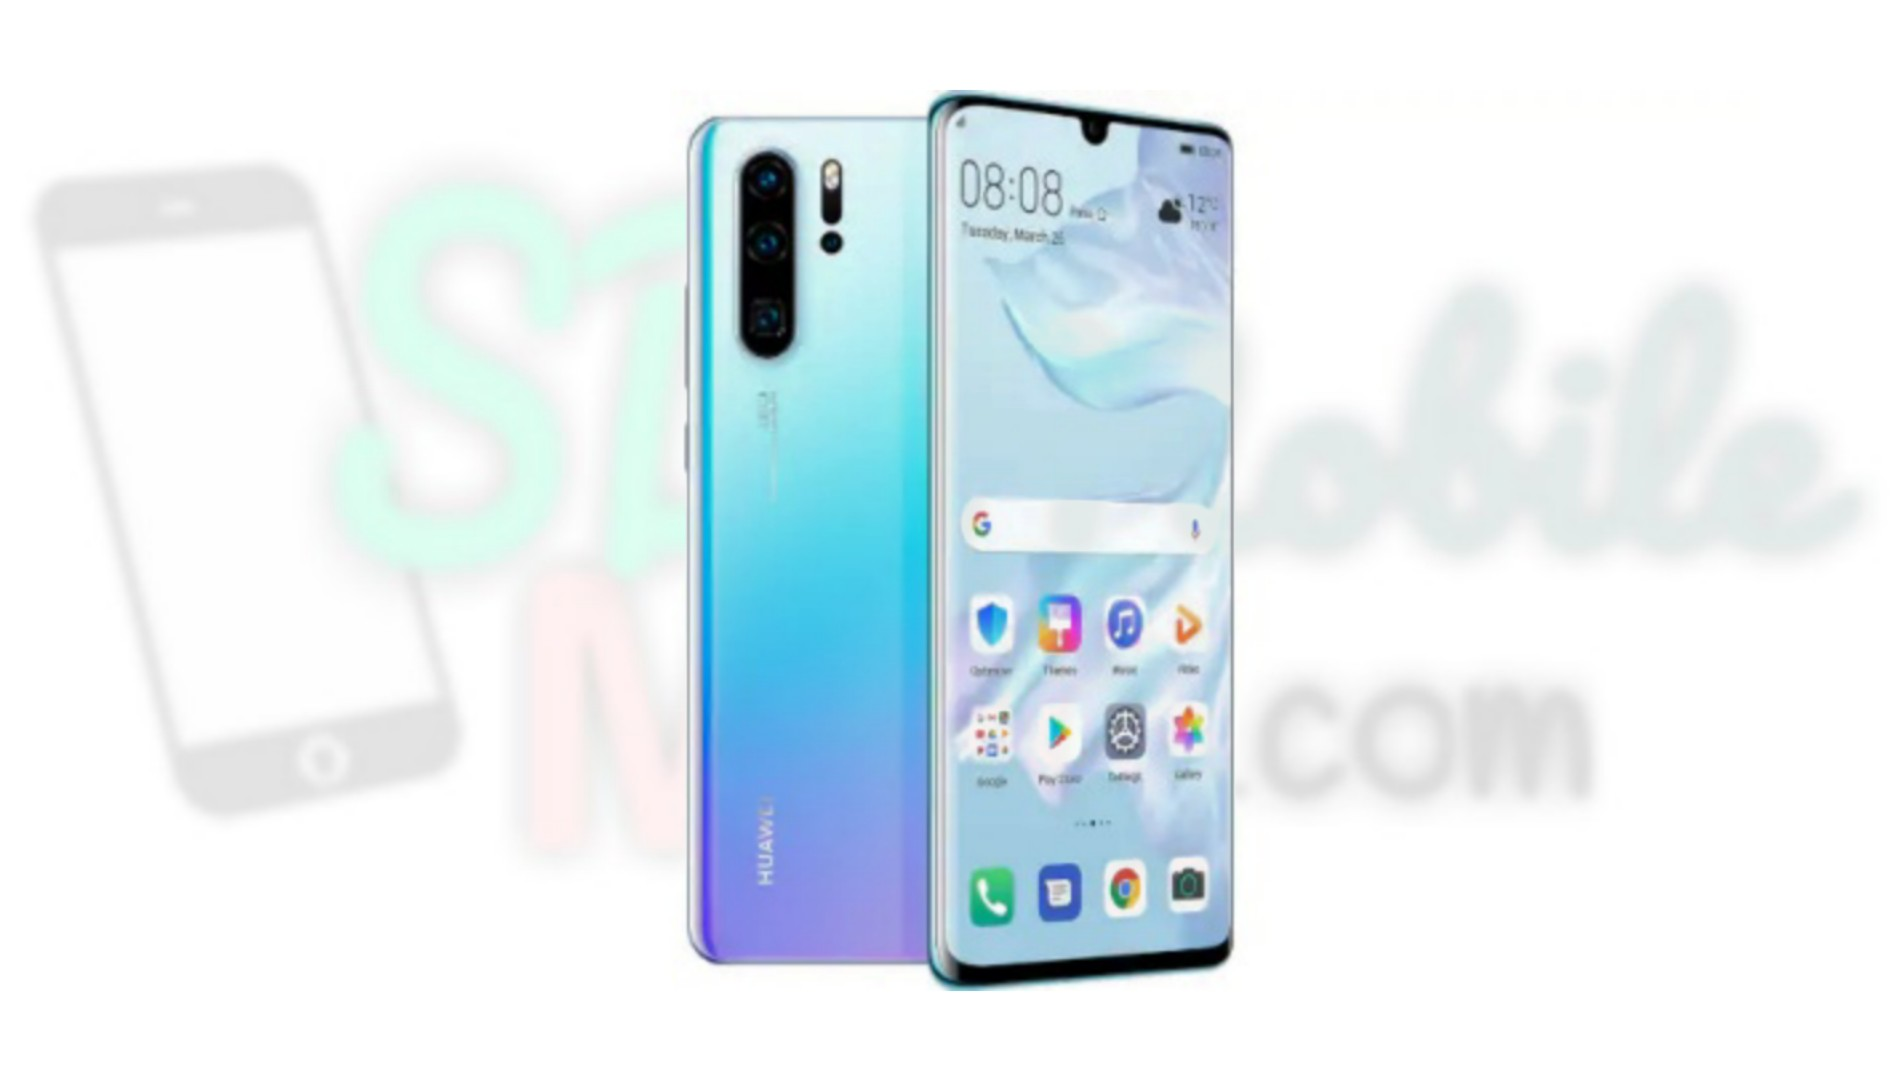 Huawei P30 Pro Specifications and Price in Bangladesh